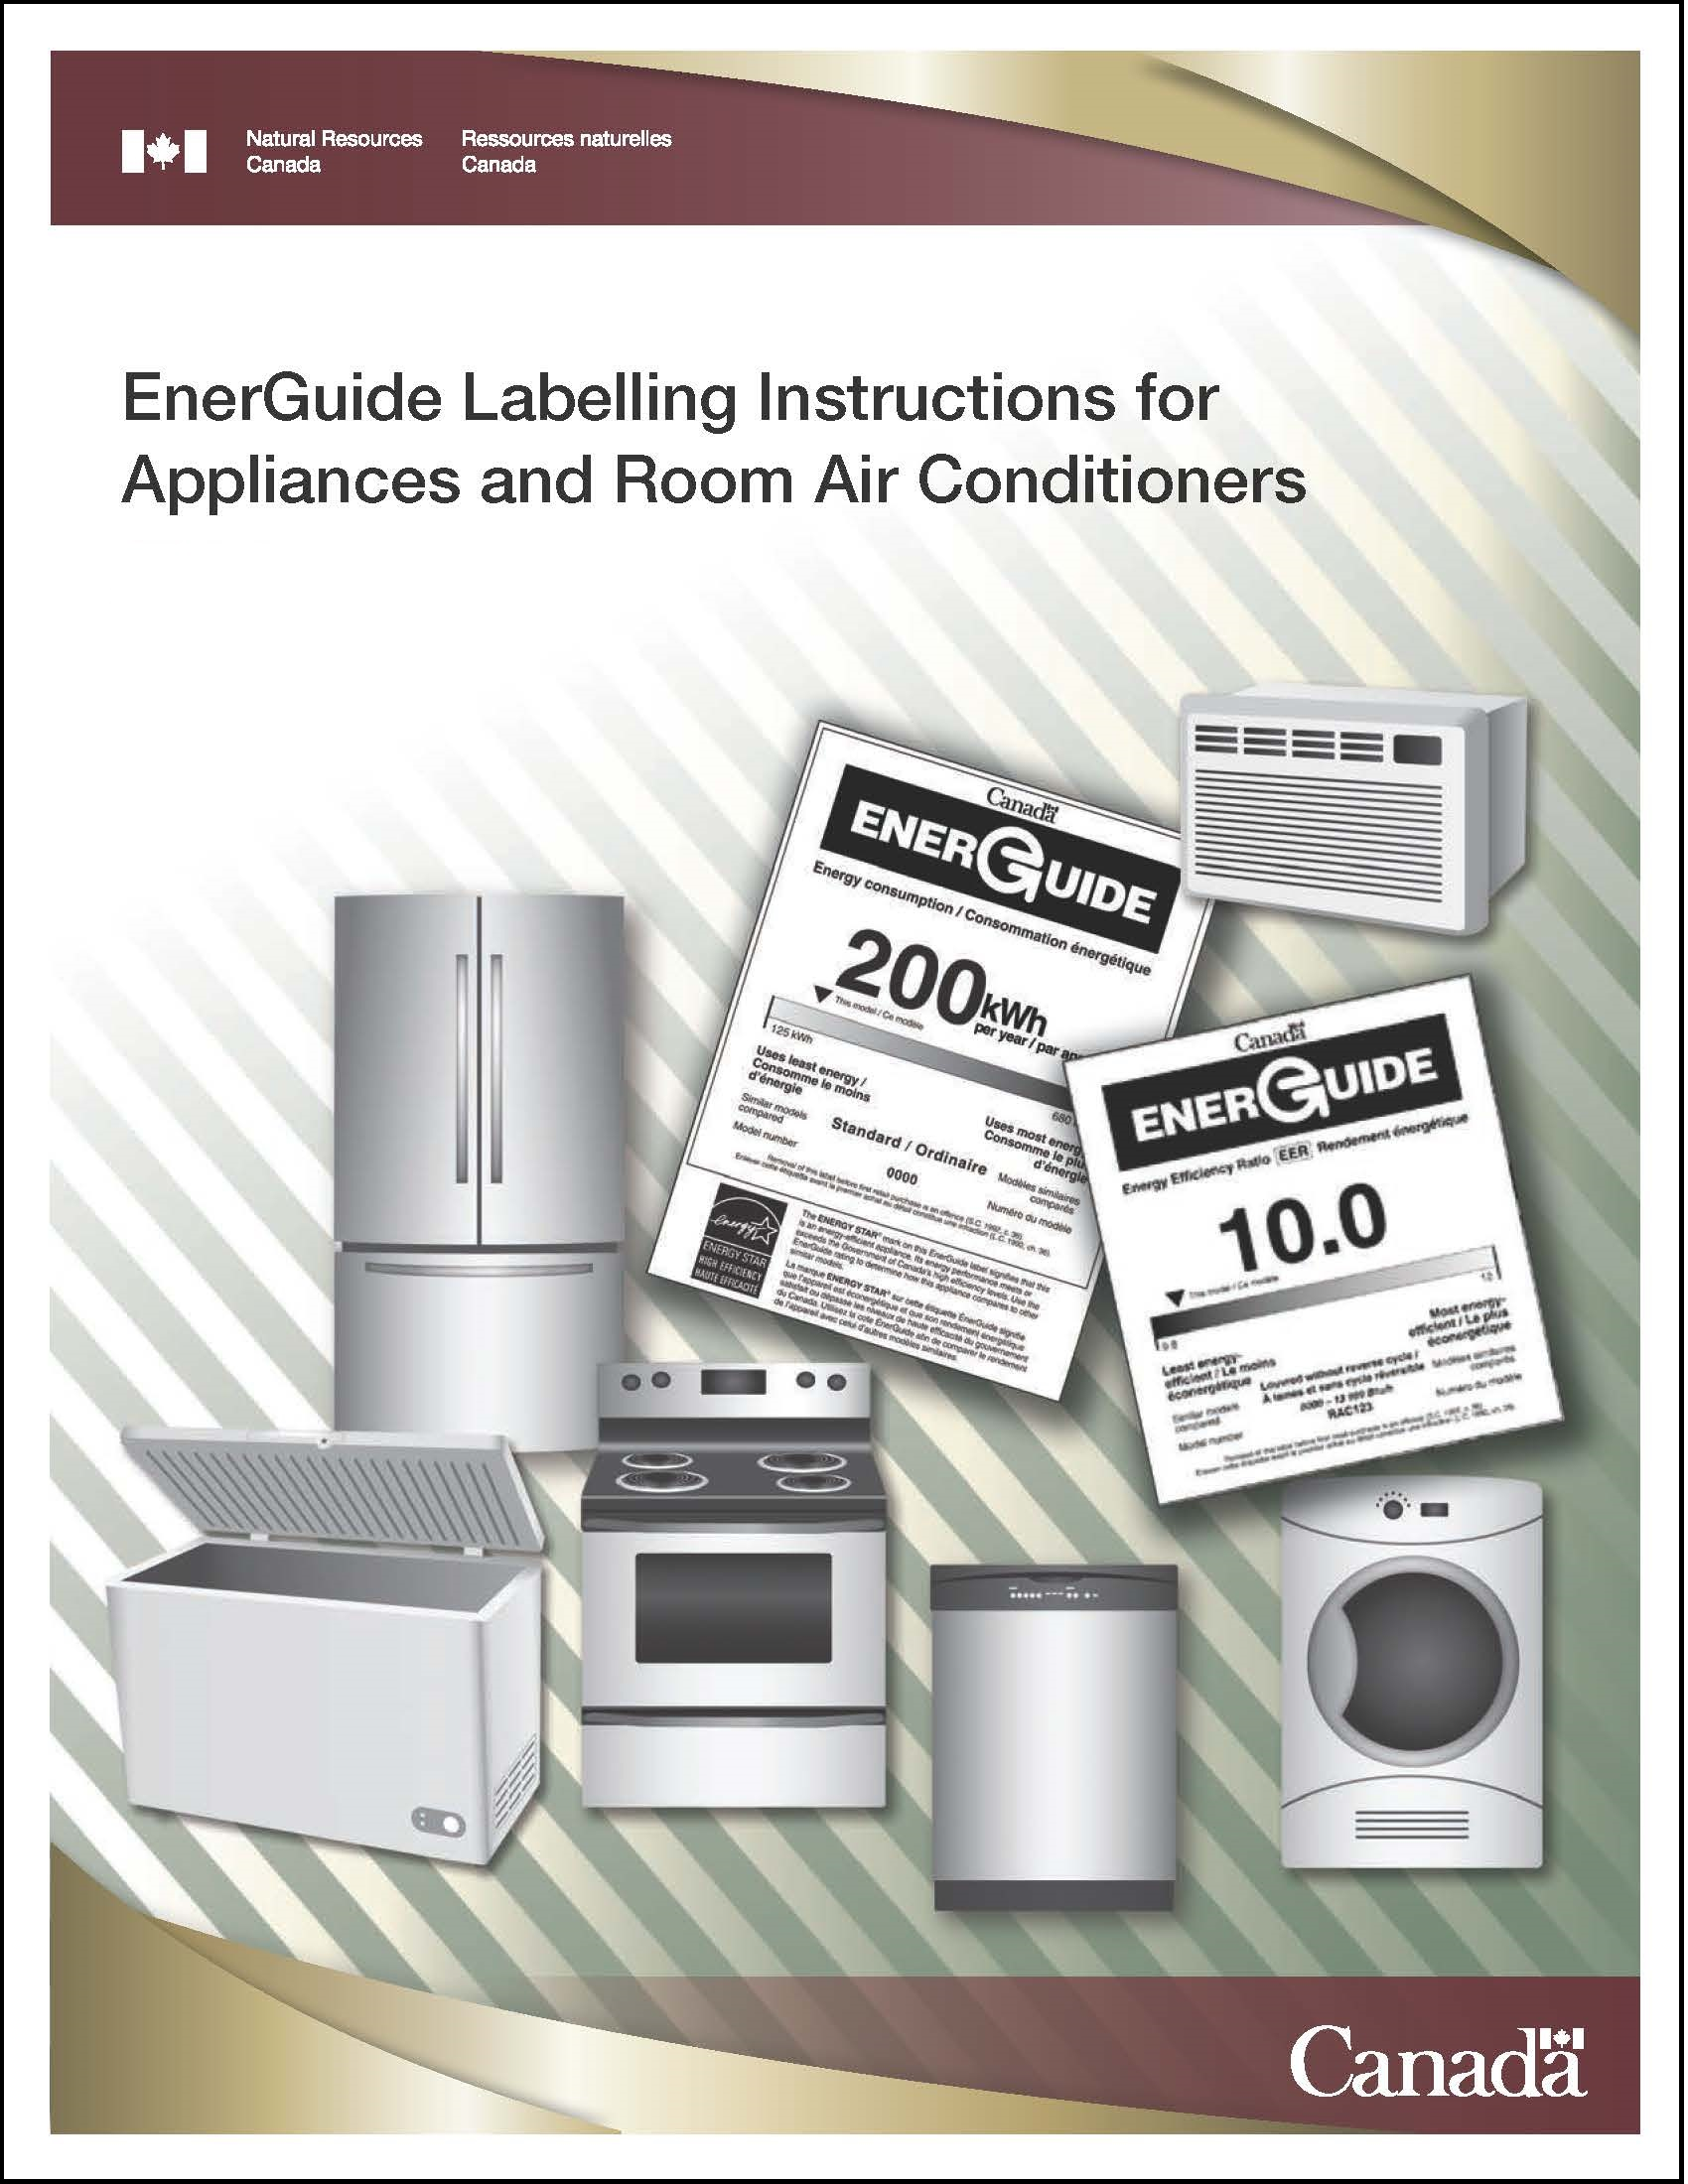 Cover of the EnerGuide Labelling Instructions for Appliances and Room Air Conditioners